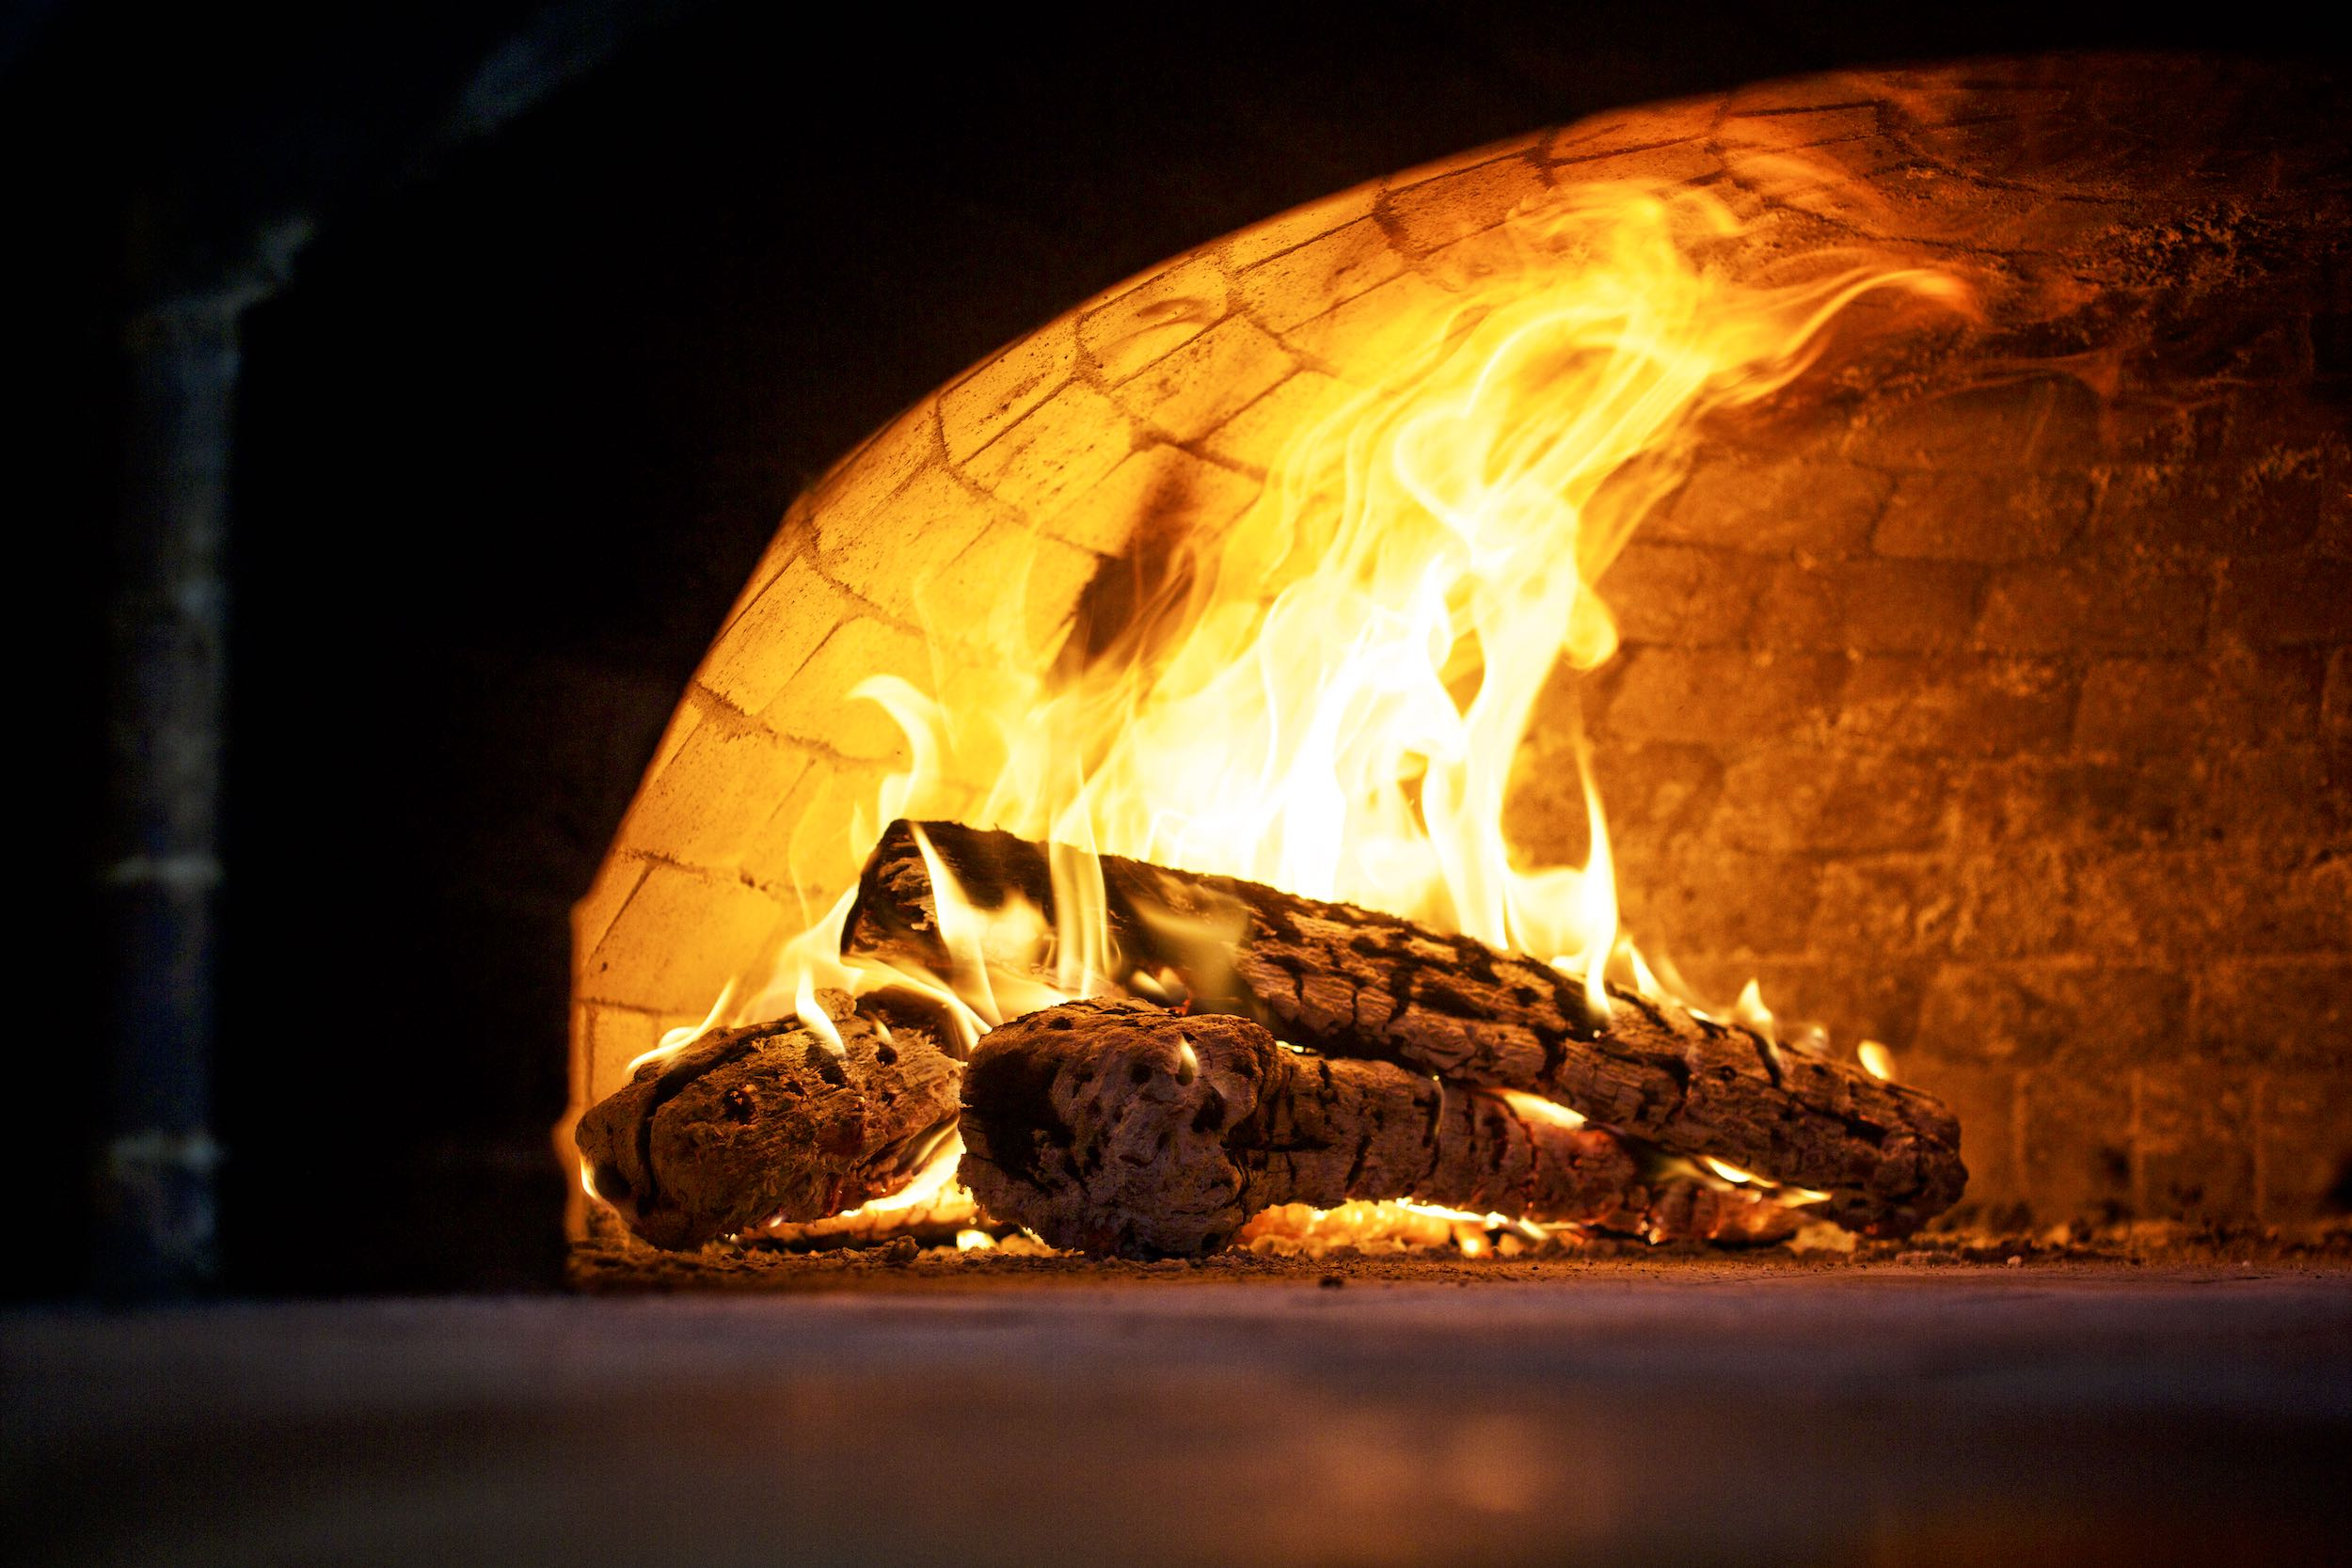 Jody Horton Photography - Wood fire in brick dome oven.